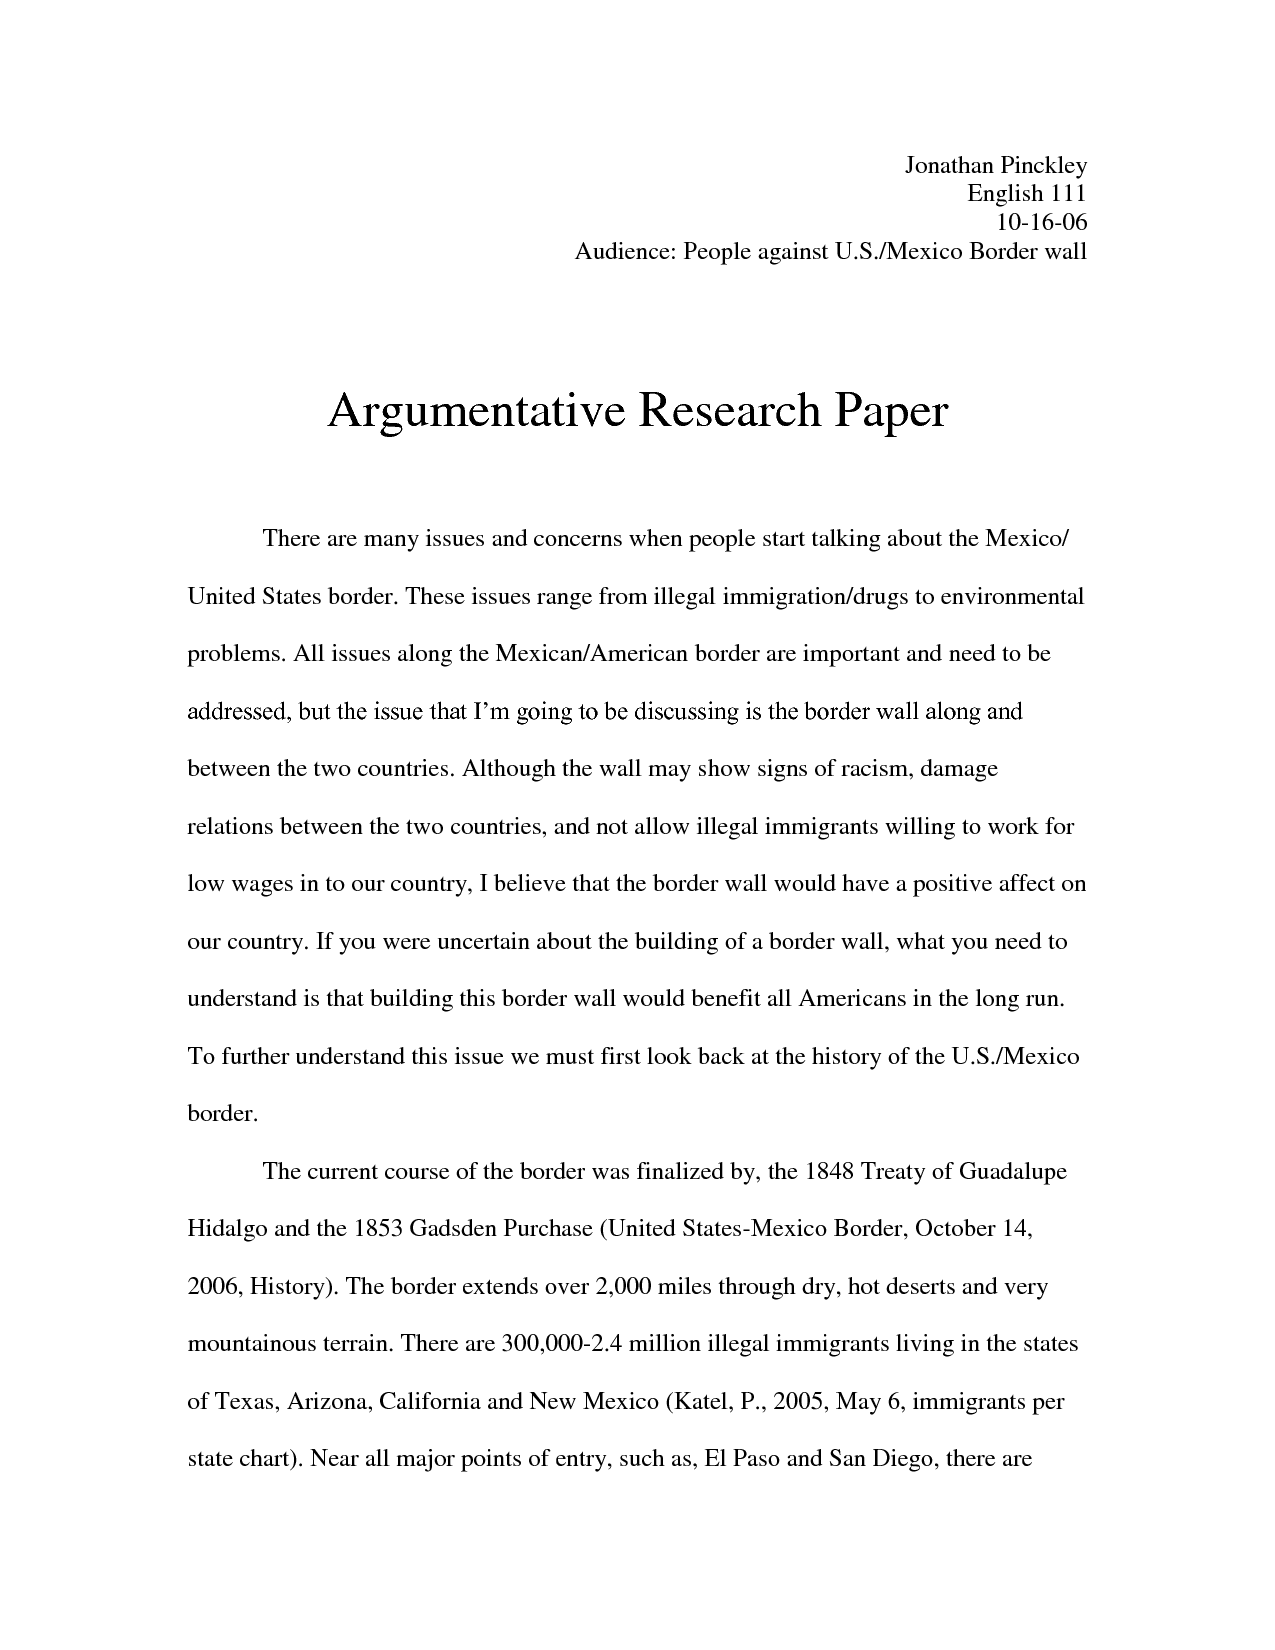 003 Pguneis96f Racism In America Essay Striking Full